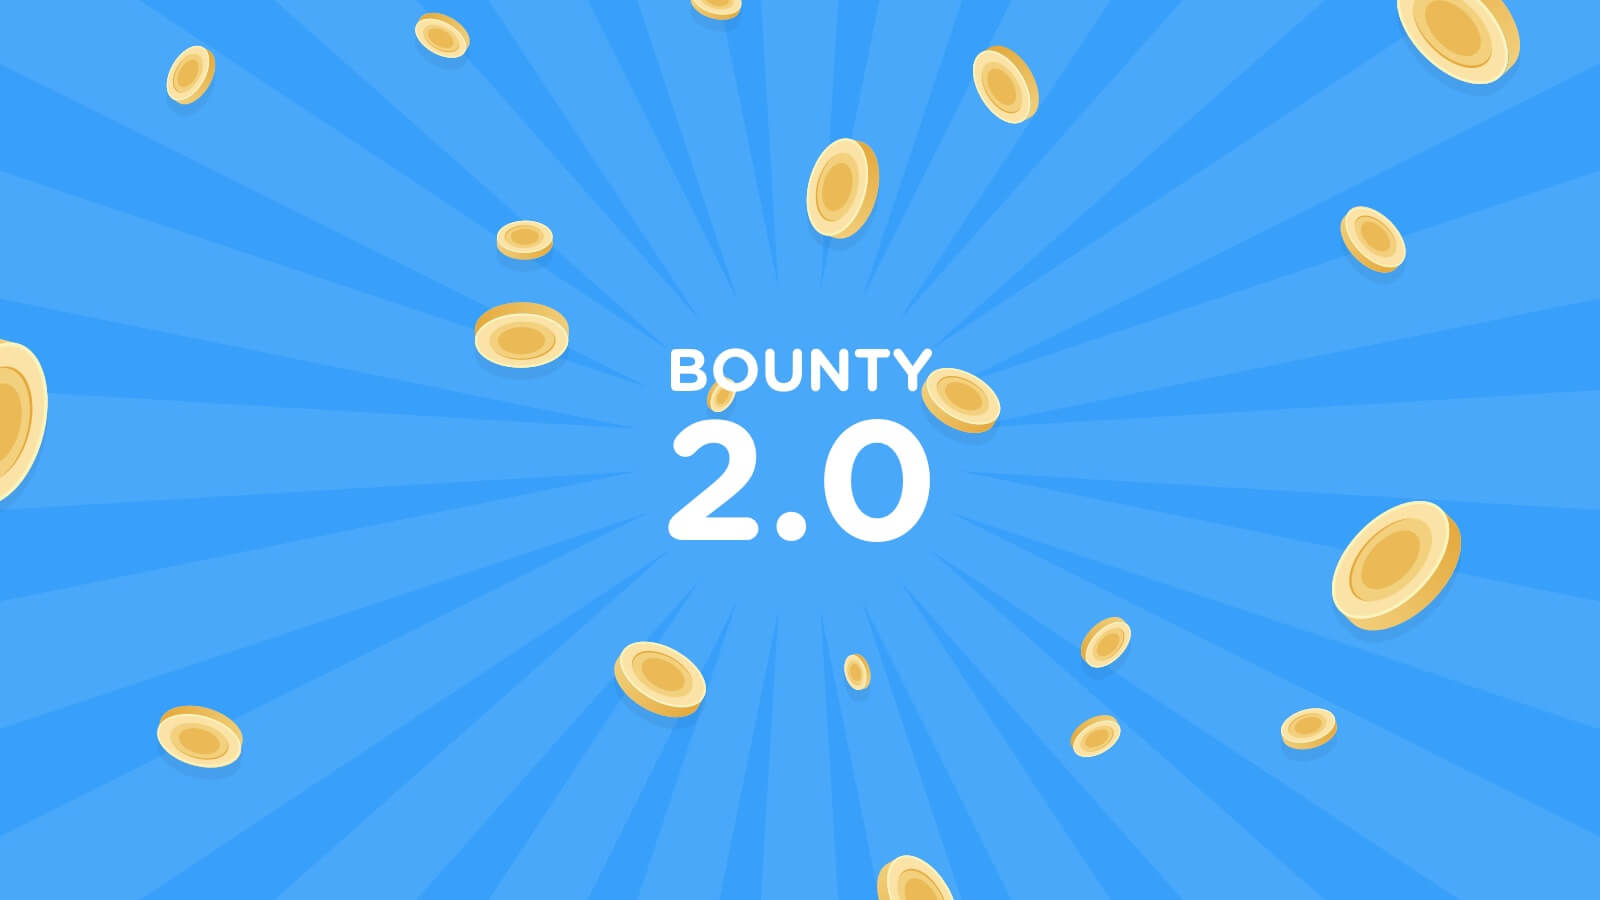 Introducing Wealth Bonus 2.0 (formerly known as Bounty)